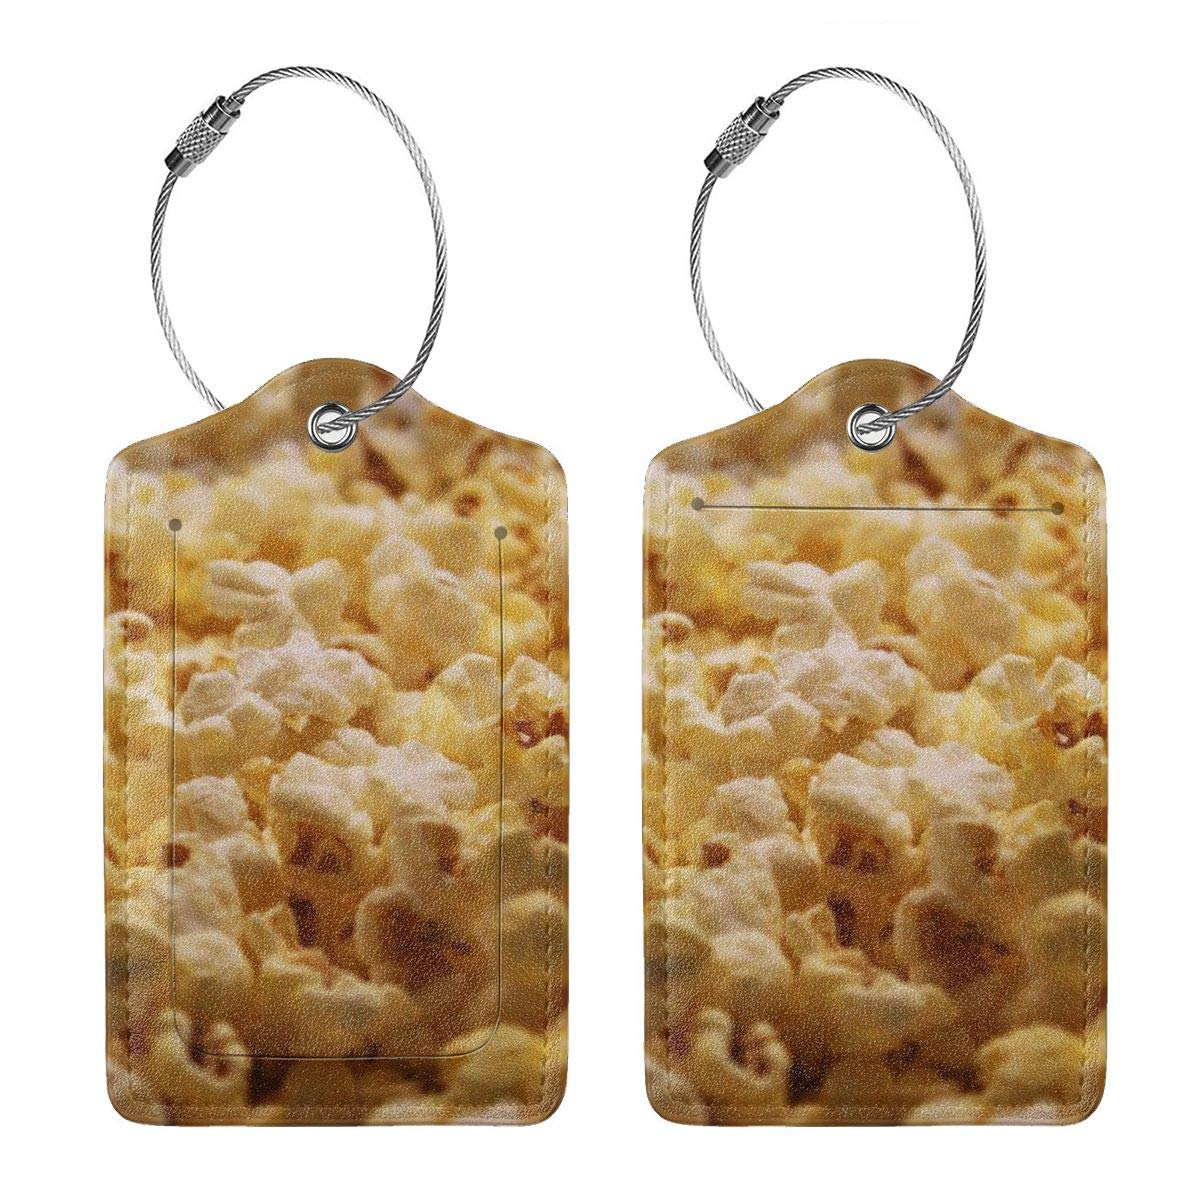 Popcorn Travel Luggage Tags With Full Privacy Cover Leather Case And Stainless Steel Loop